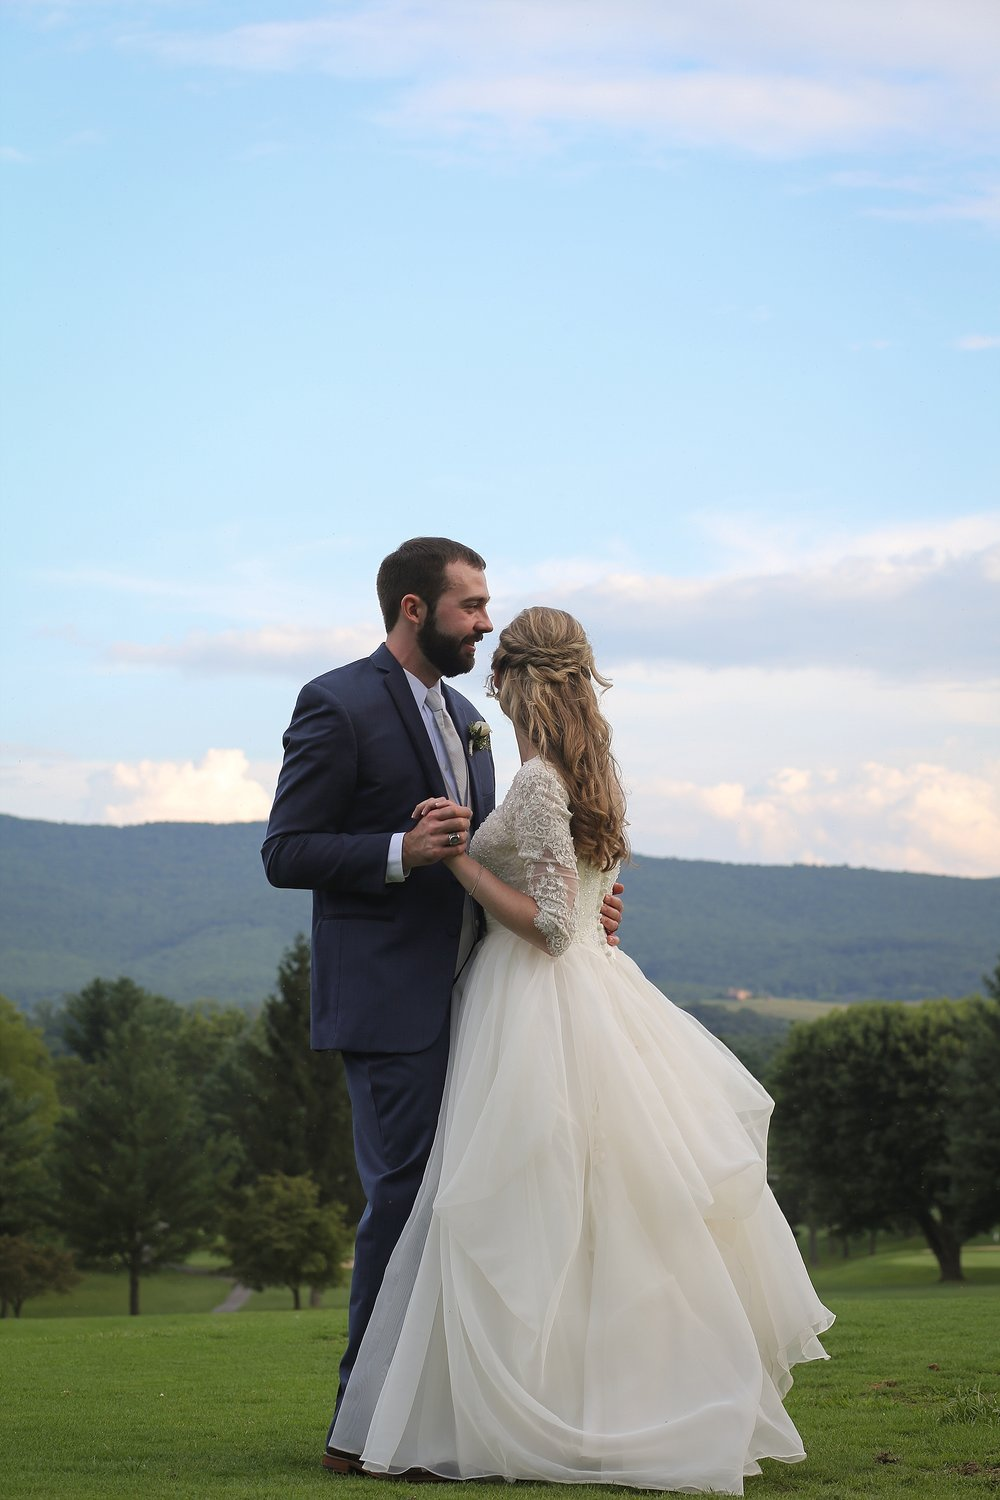 Wytheville Golf Club Wedding Photography | Southwest Virginia Wedding Photographer, Holly Cromer